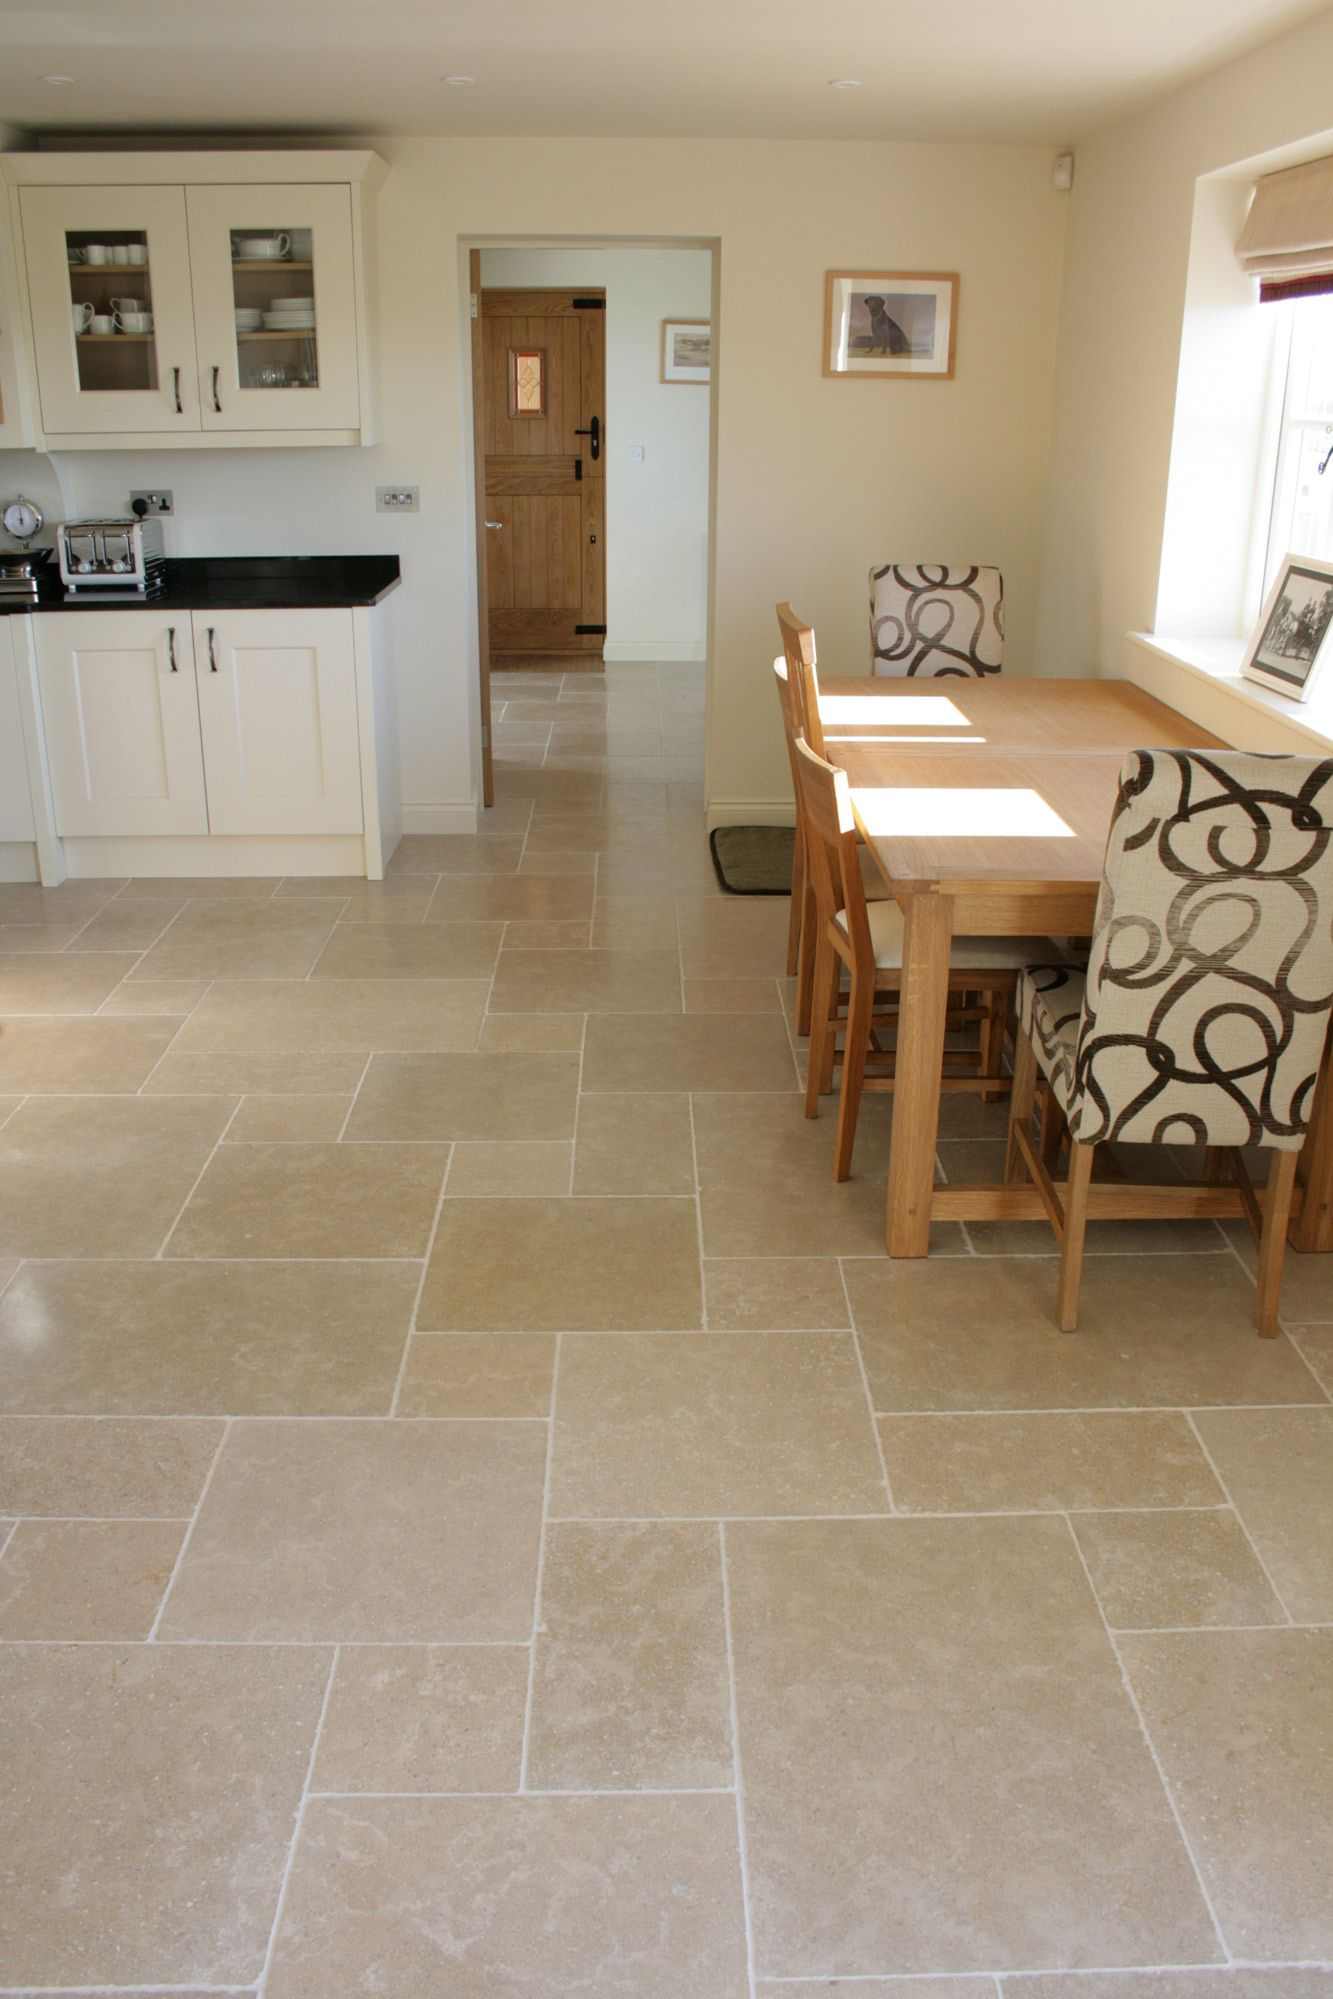 Travertine Floors In Kitchen Dijon Tumbled Limestone Floor Tiles Large Pattern Mrs Bucknall